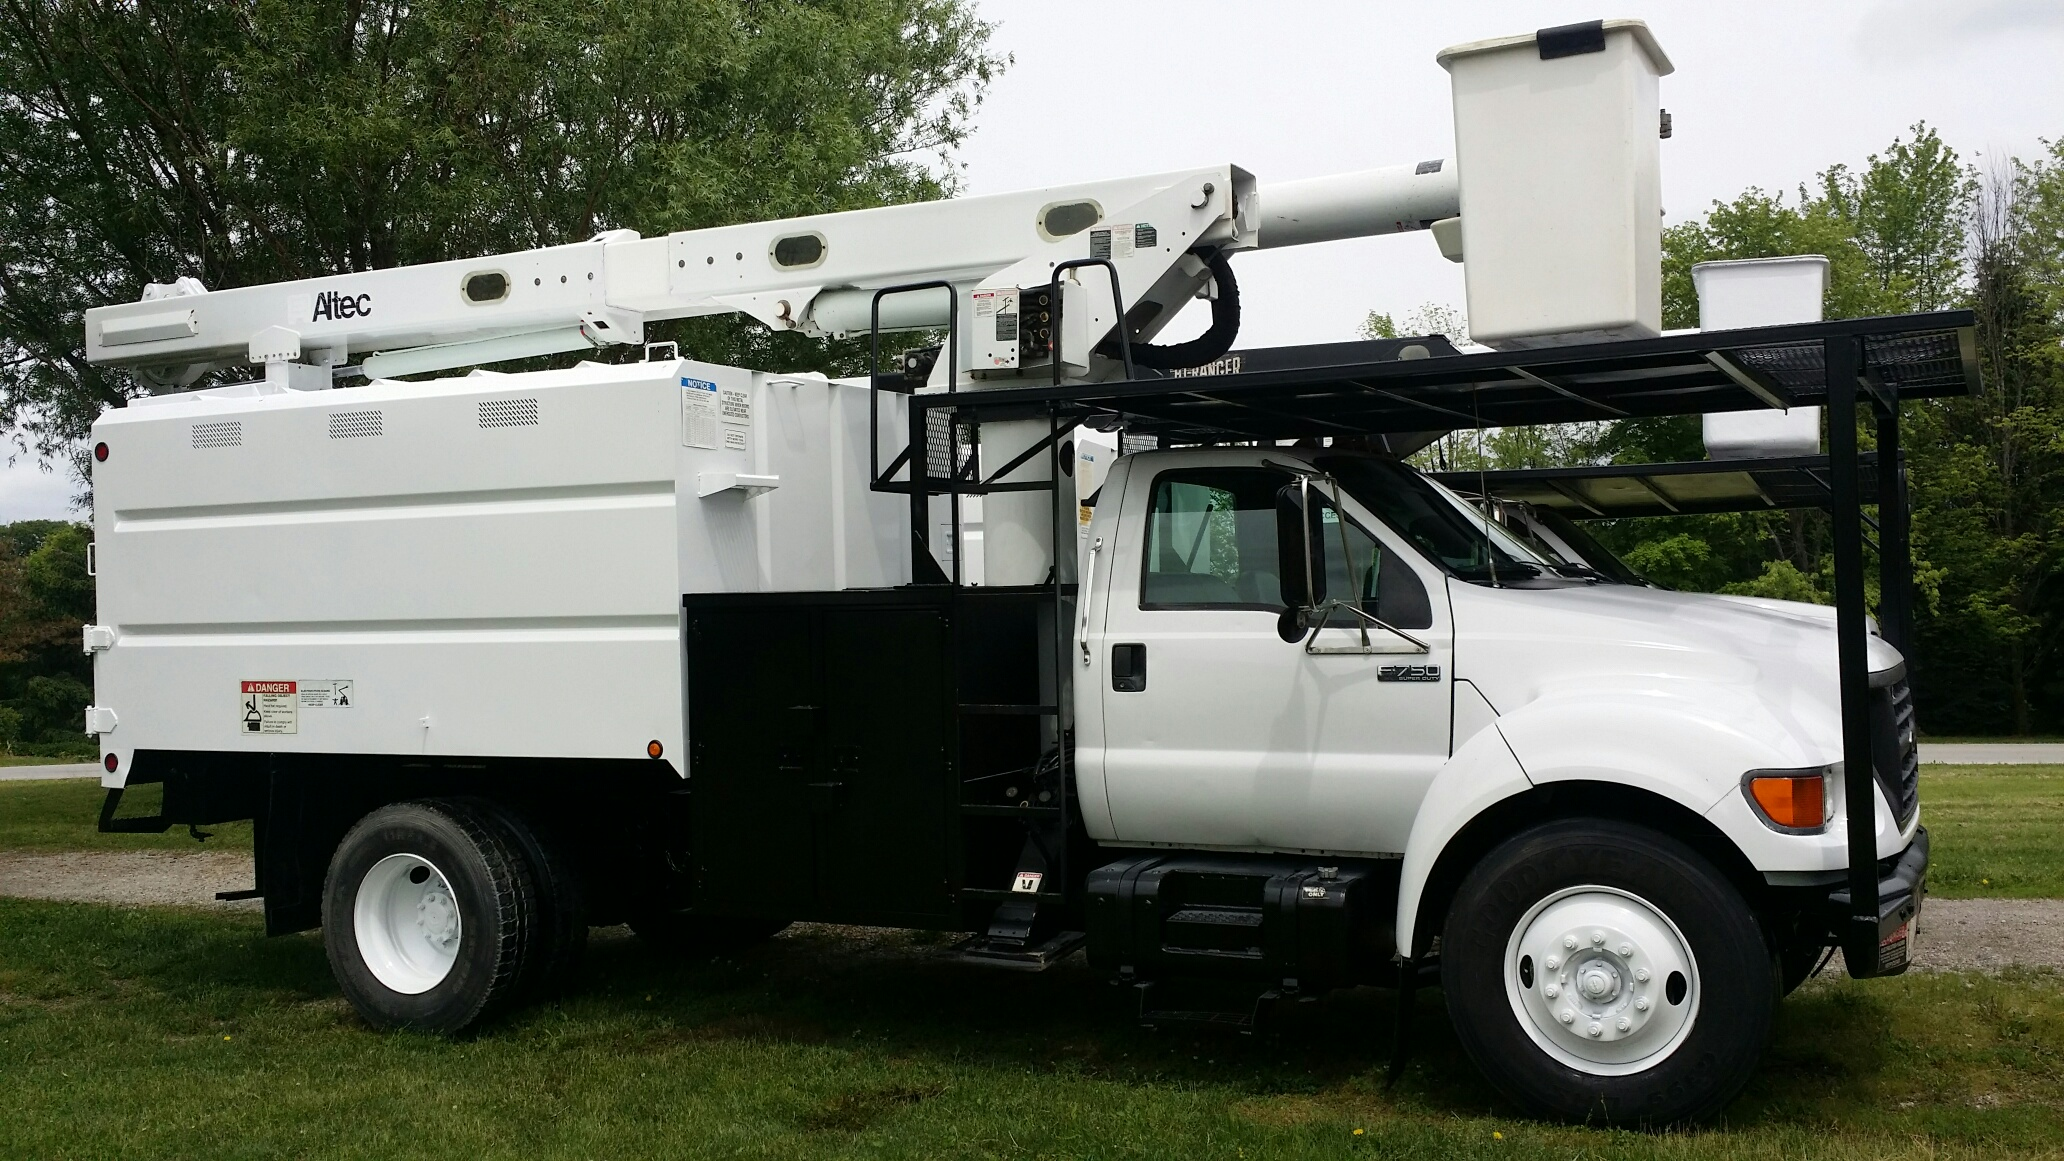 2003 Ford Forestry Cherry Picket Bucket Truck